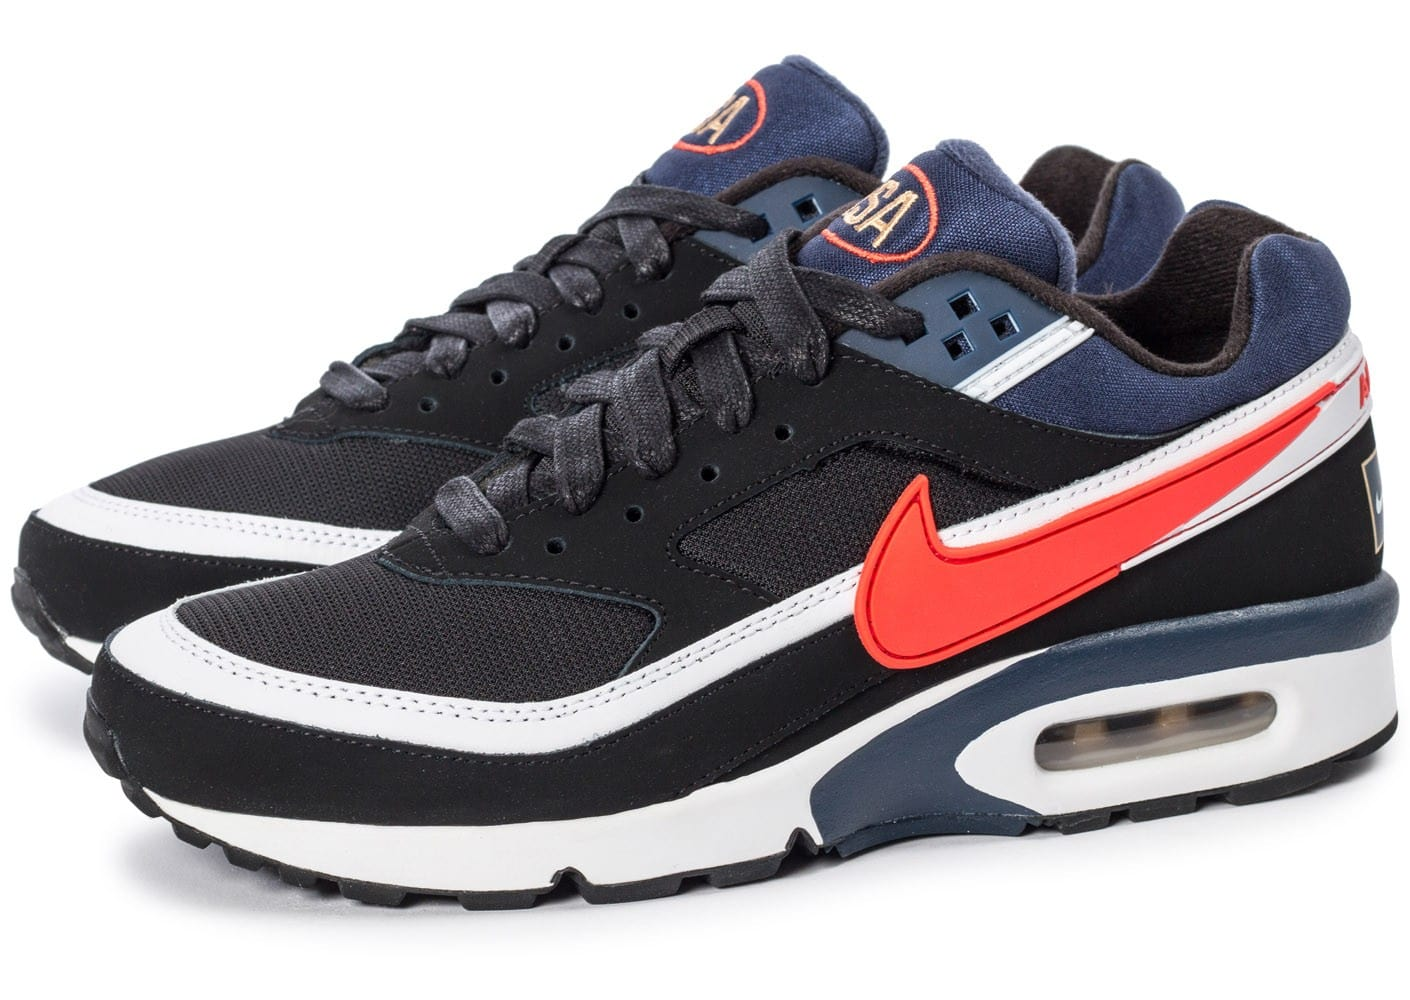 nike air max bw olympic usa chaussures homme chausport. Black Bedroom Furniture Sets. Home Design Ideas